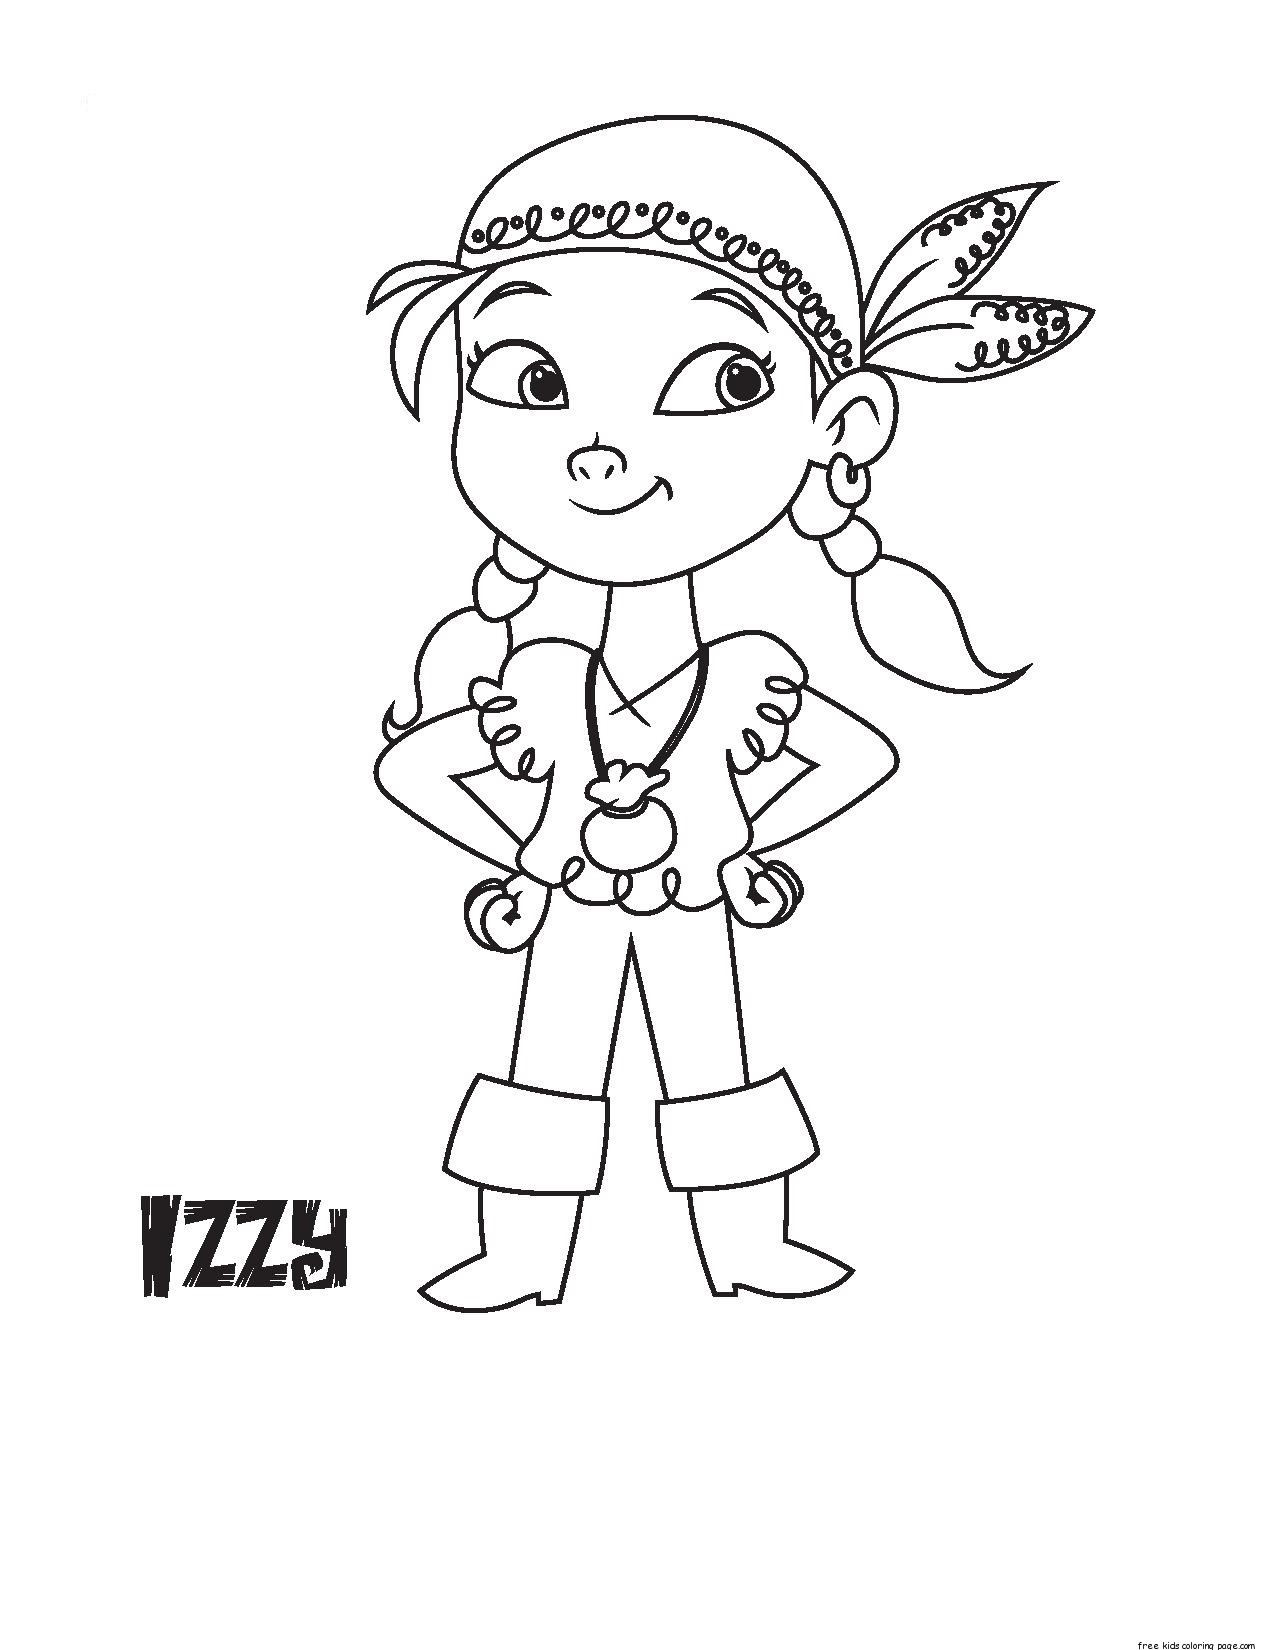 Printable Disney Junior Izzy coloring